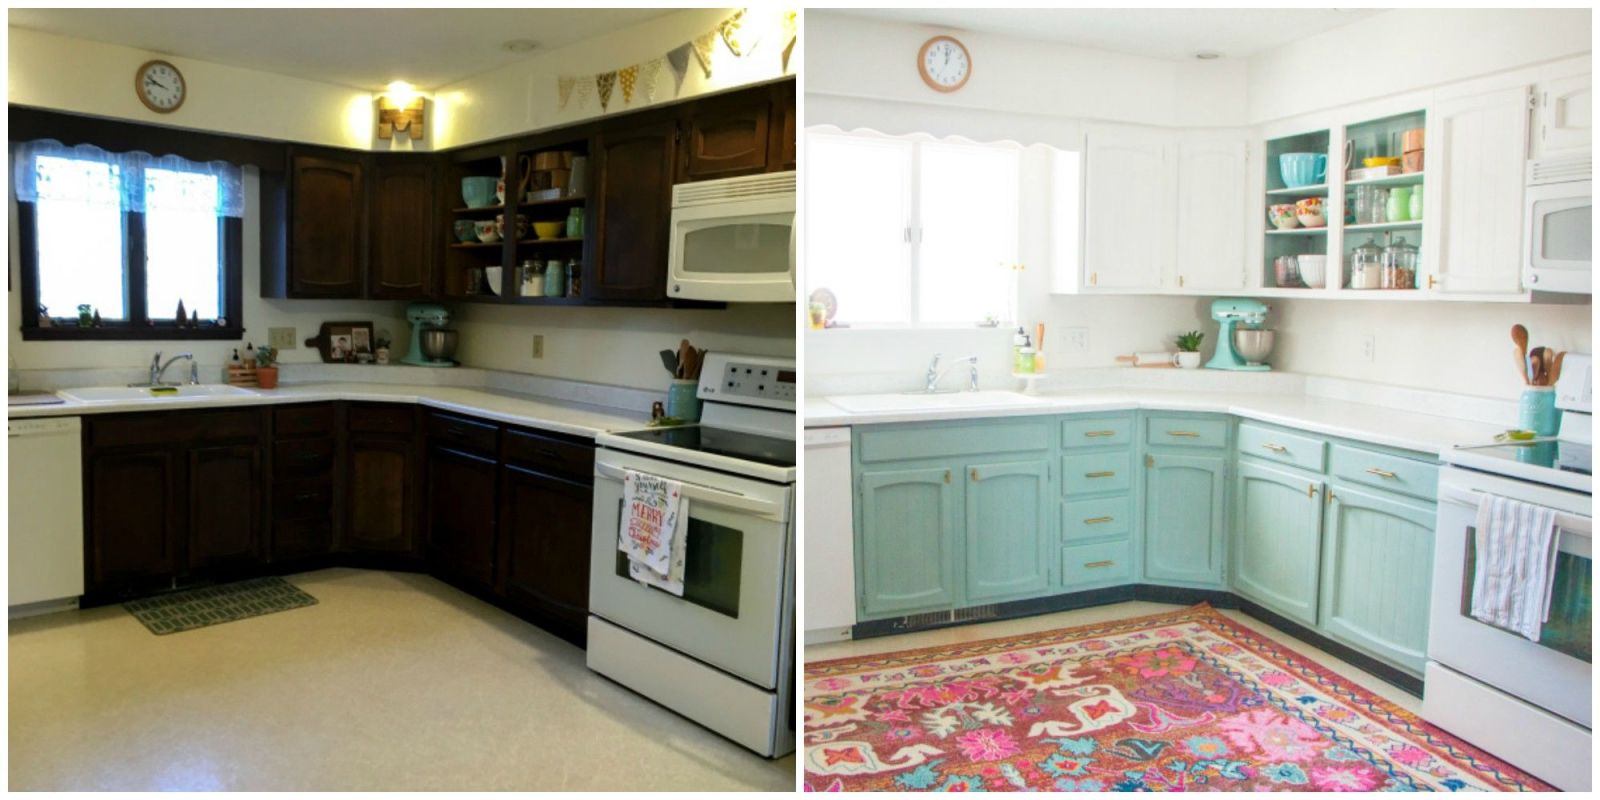 Kitchen Renovation Before And After renovating an old house - before and after pictures of home